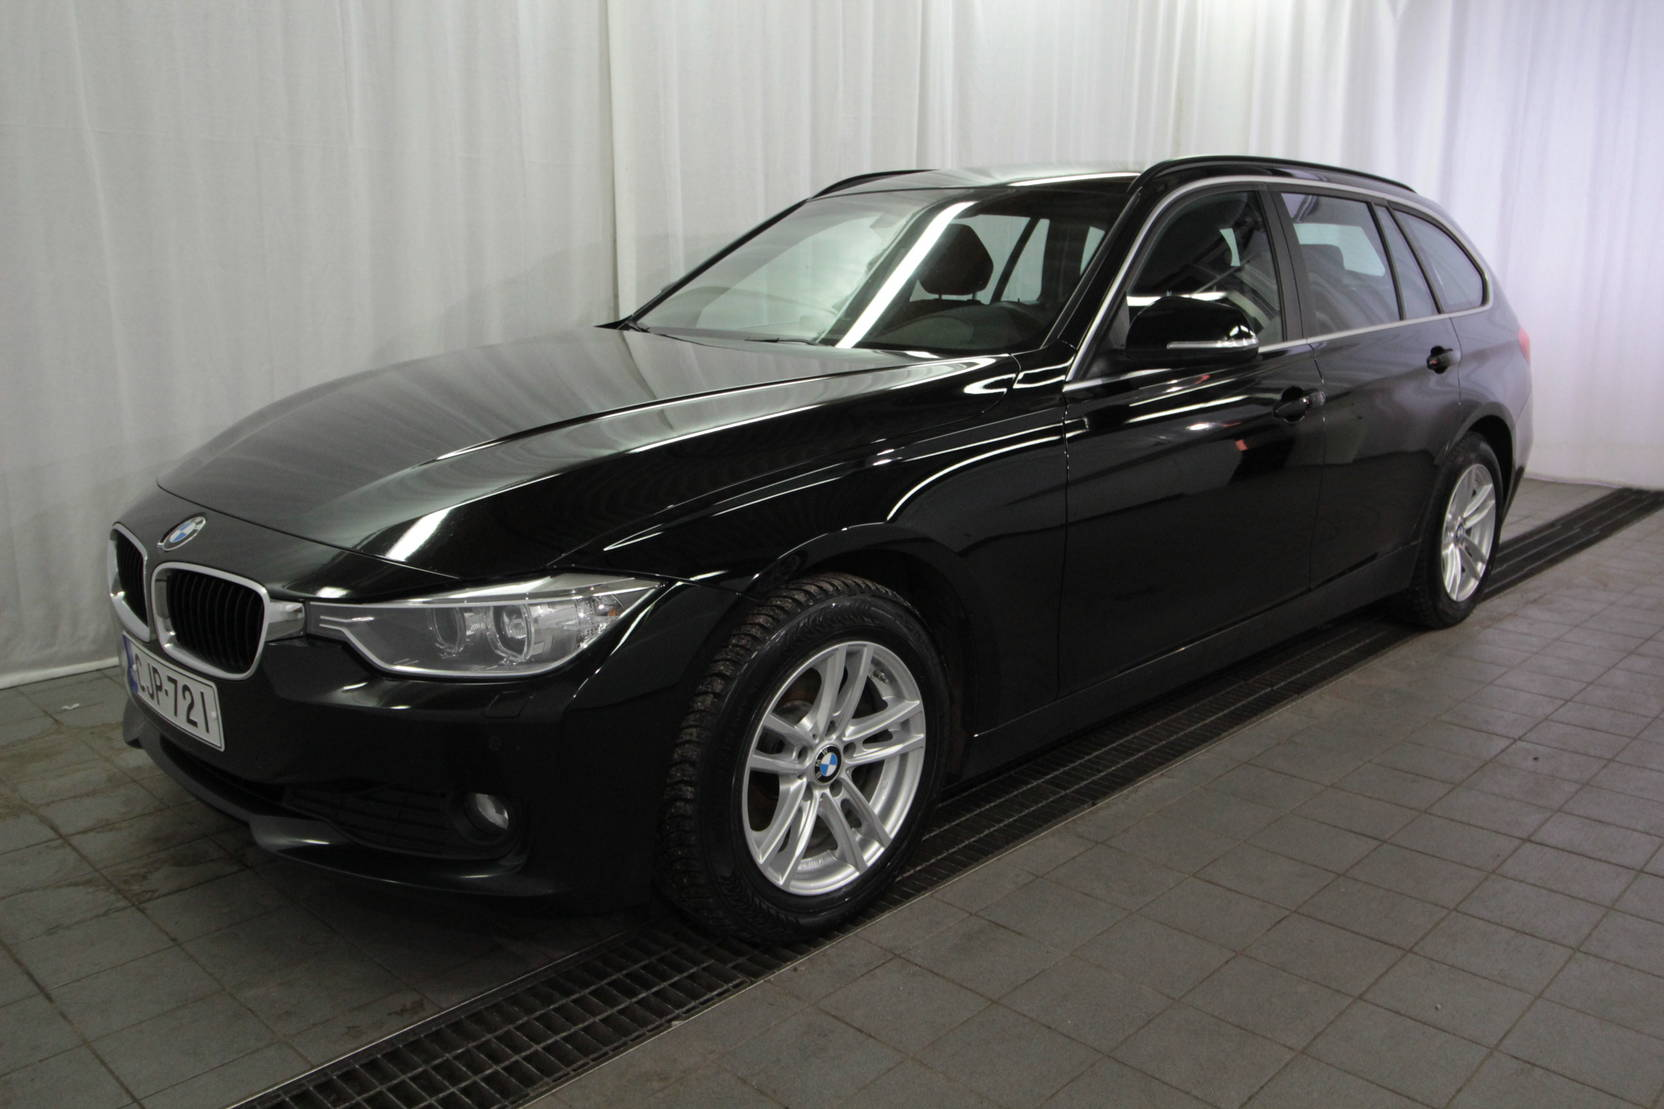 BMW 3 Serie Touring 318d Twinpower Turbo A Business detail1